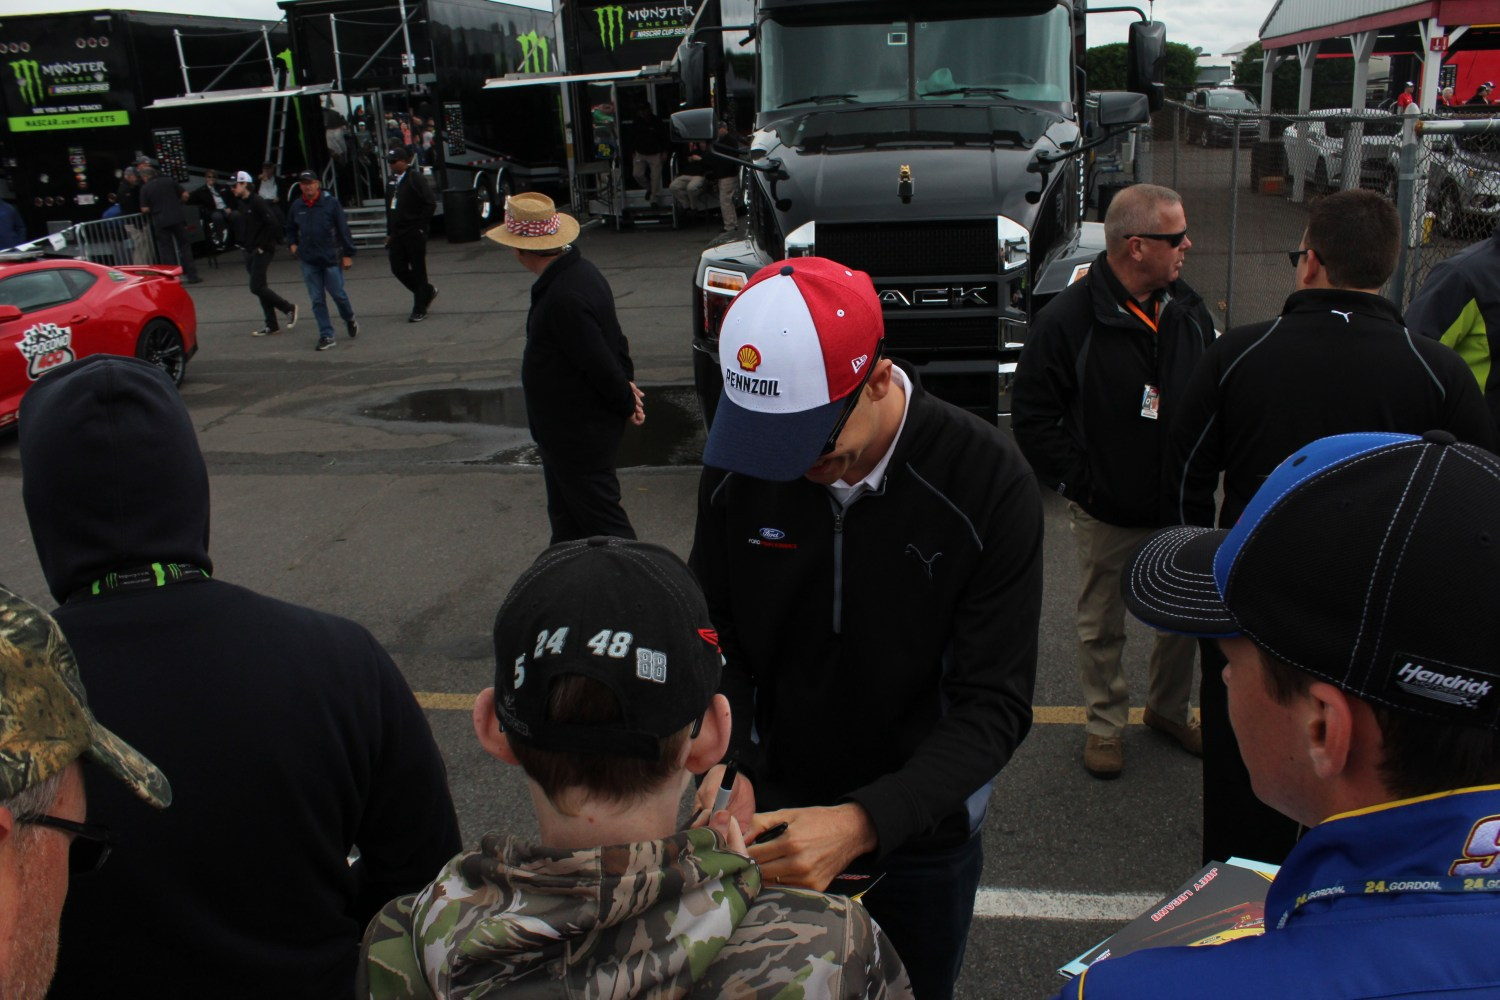 Joey Logano signs autographs ahead of the 2018 Pocono 400. (Tyler Head | The Racing Experts)